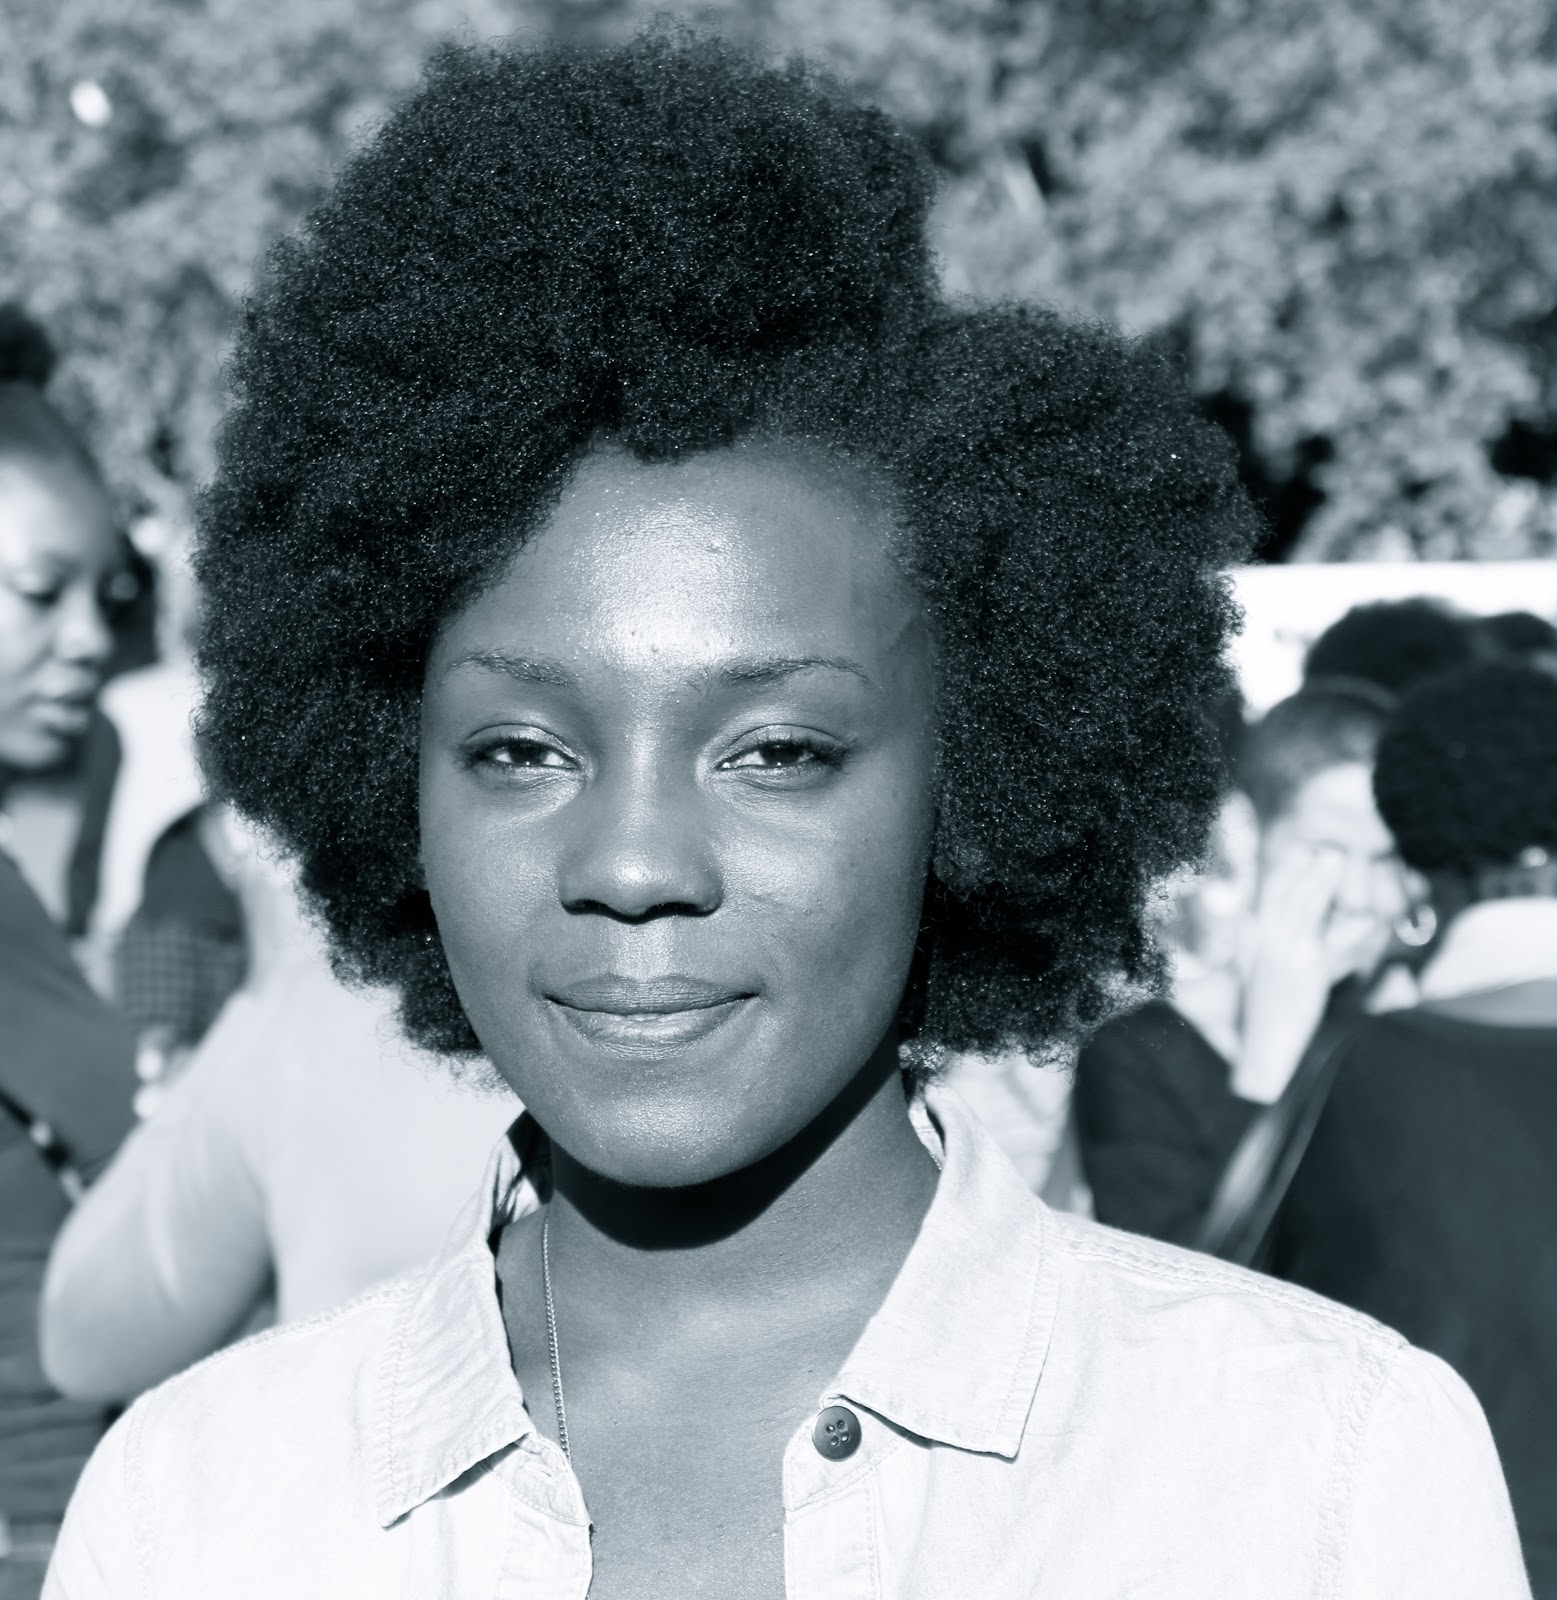 10 Pansy Black Beauty: Young Gifted And Black Beauty Of The Week Marie-Josée